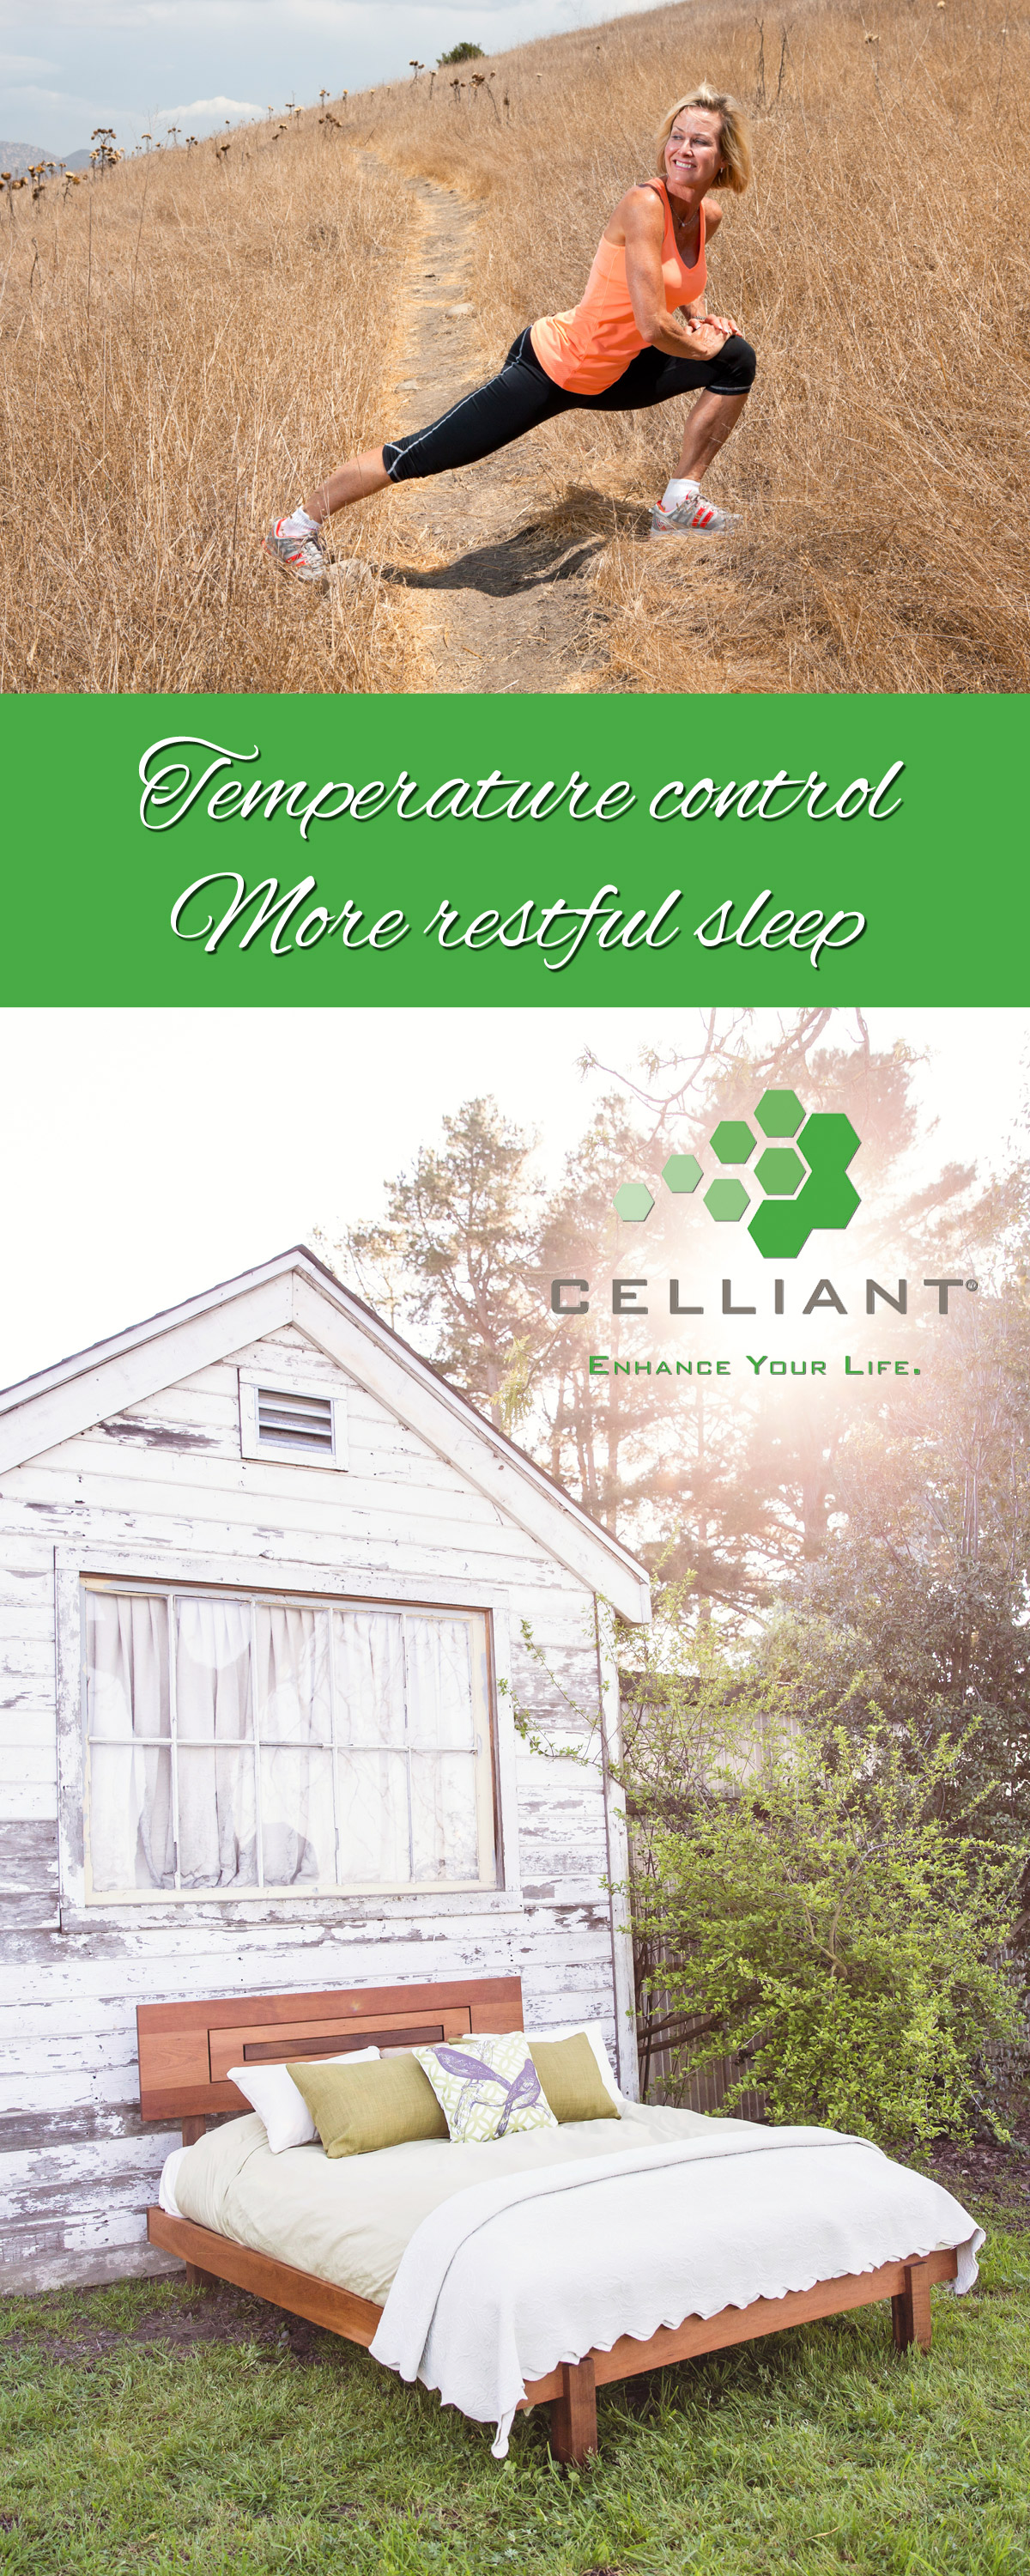 Alpha Celliant Advanced Performance Mattress made exclusively by The Futon Shop - Alpha Sleep